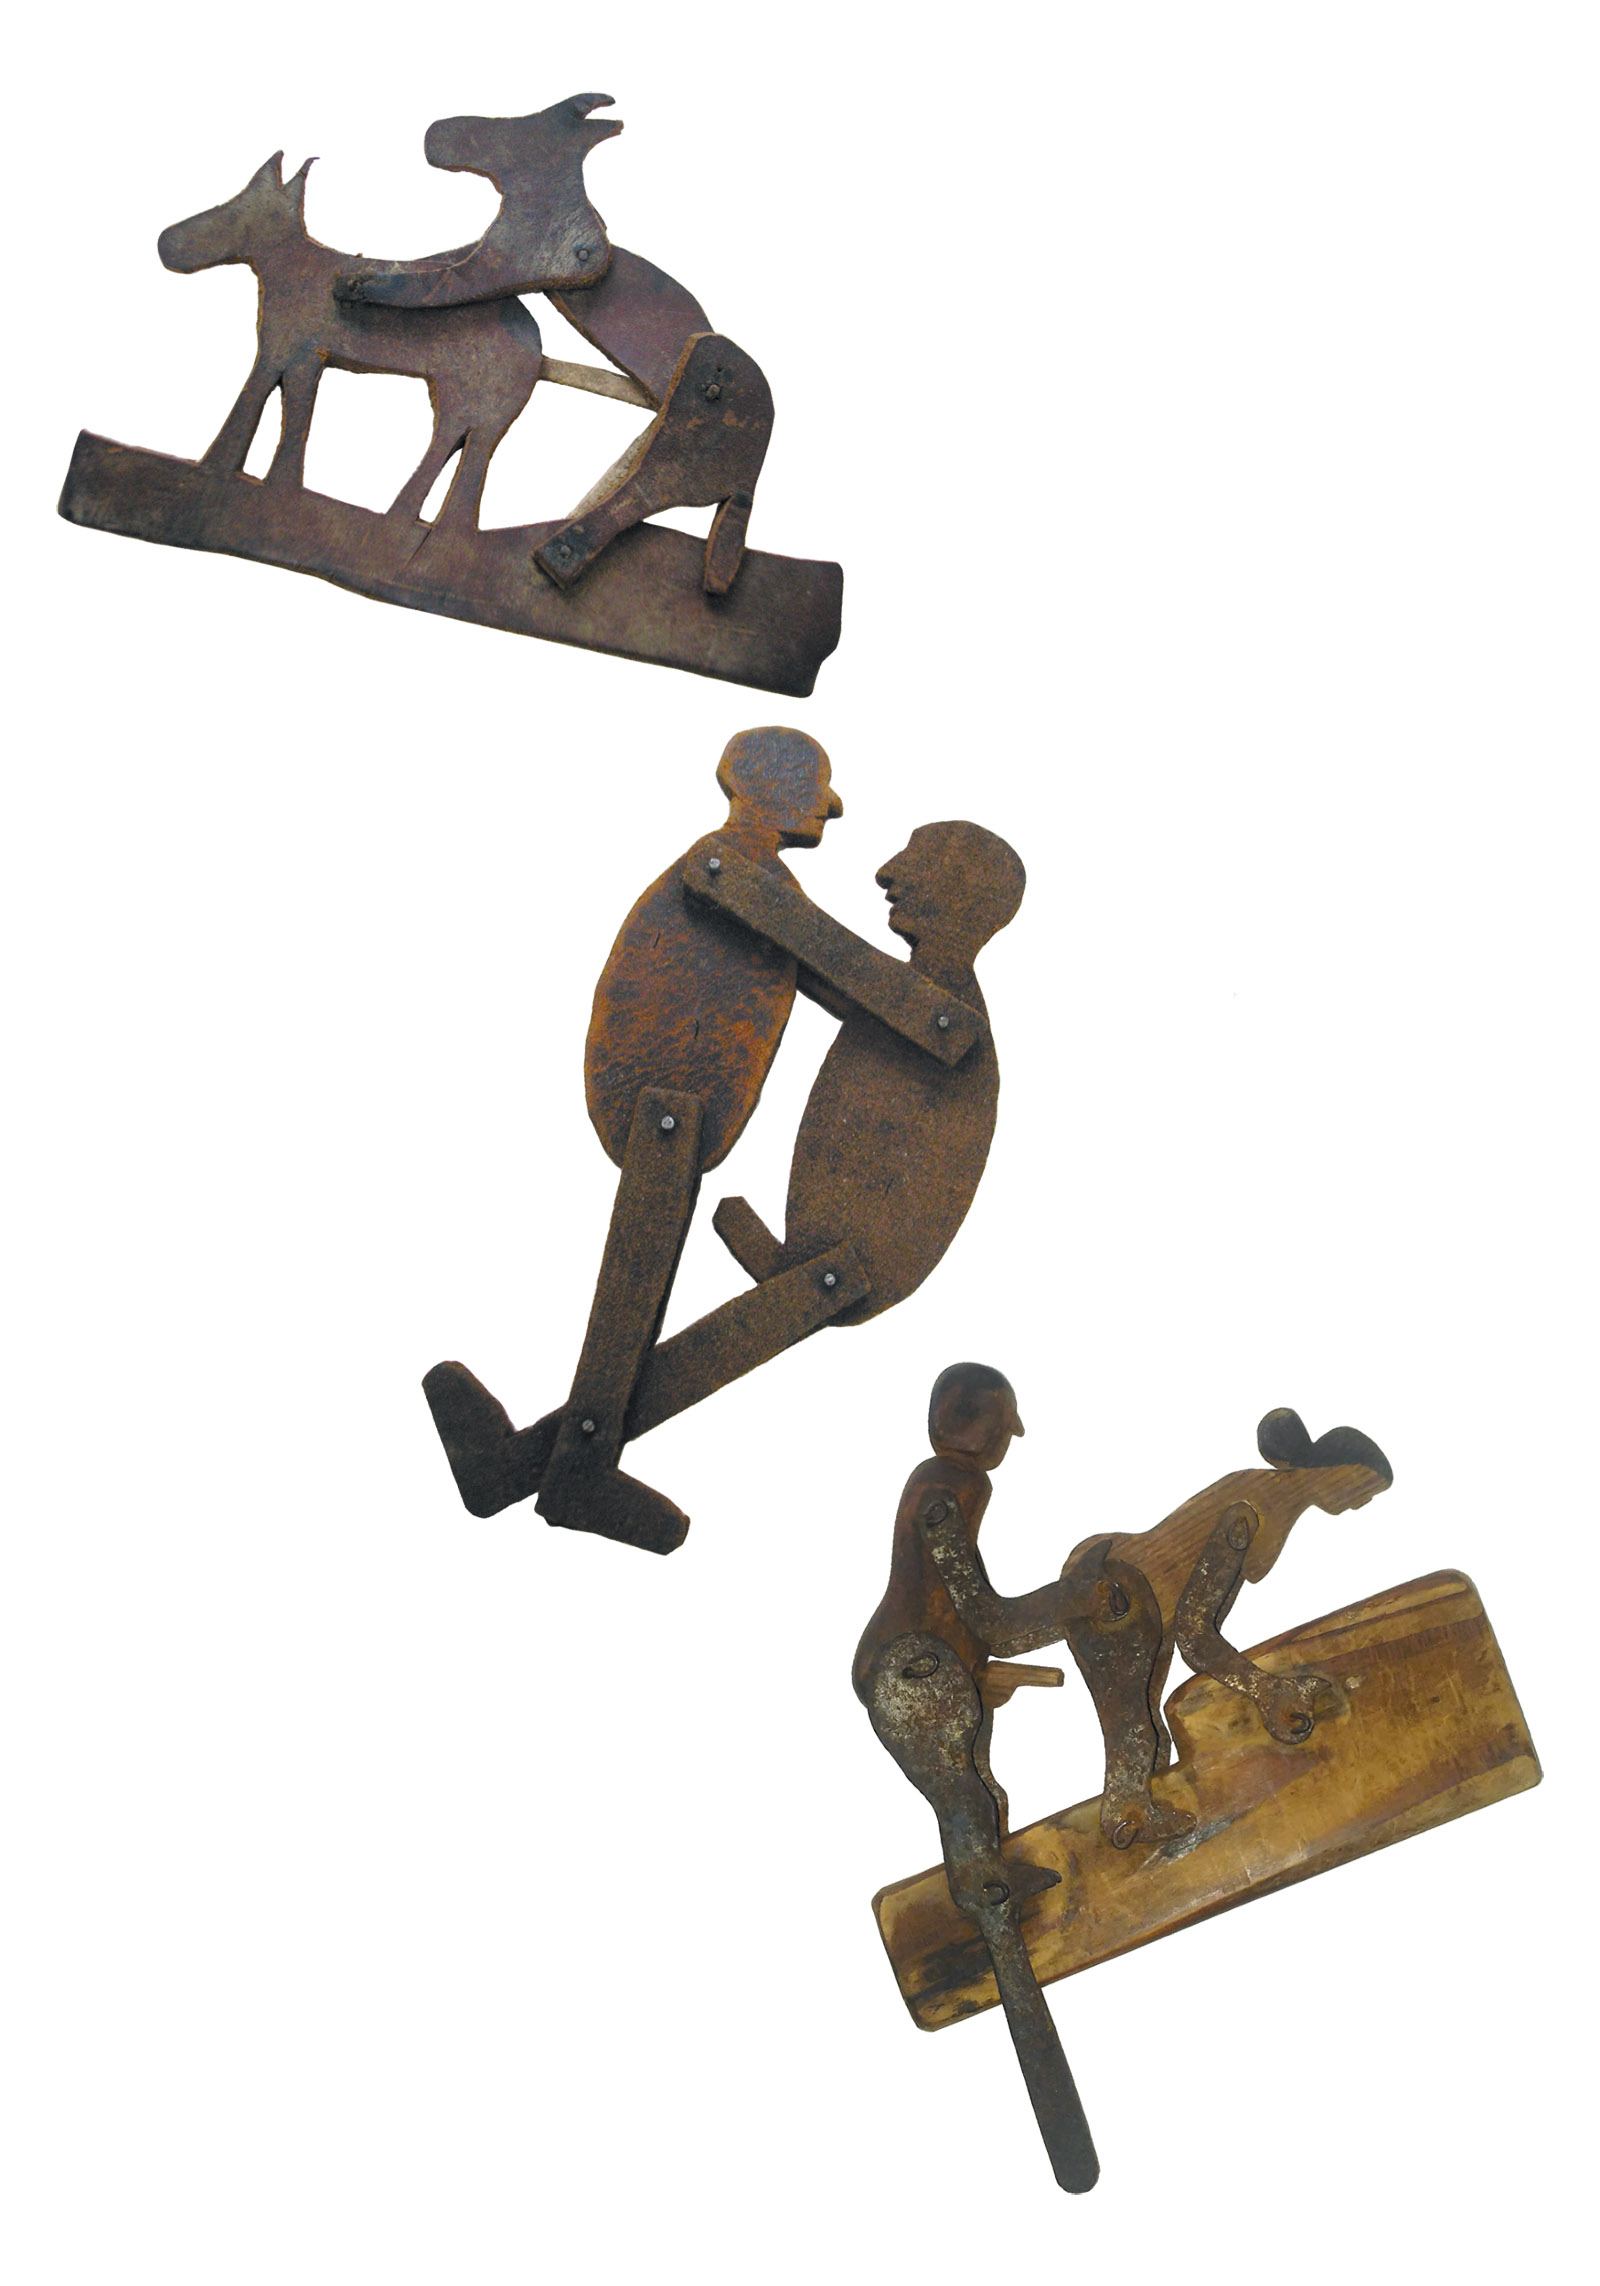 Articulated figures made from leather, metal and wood, circa 1920–1930